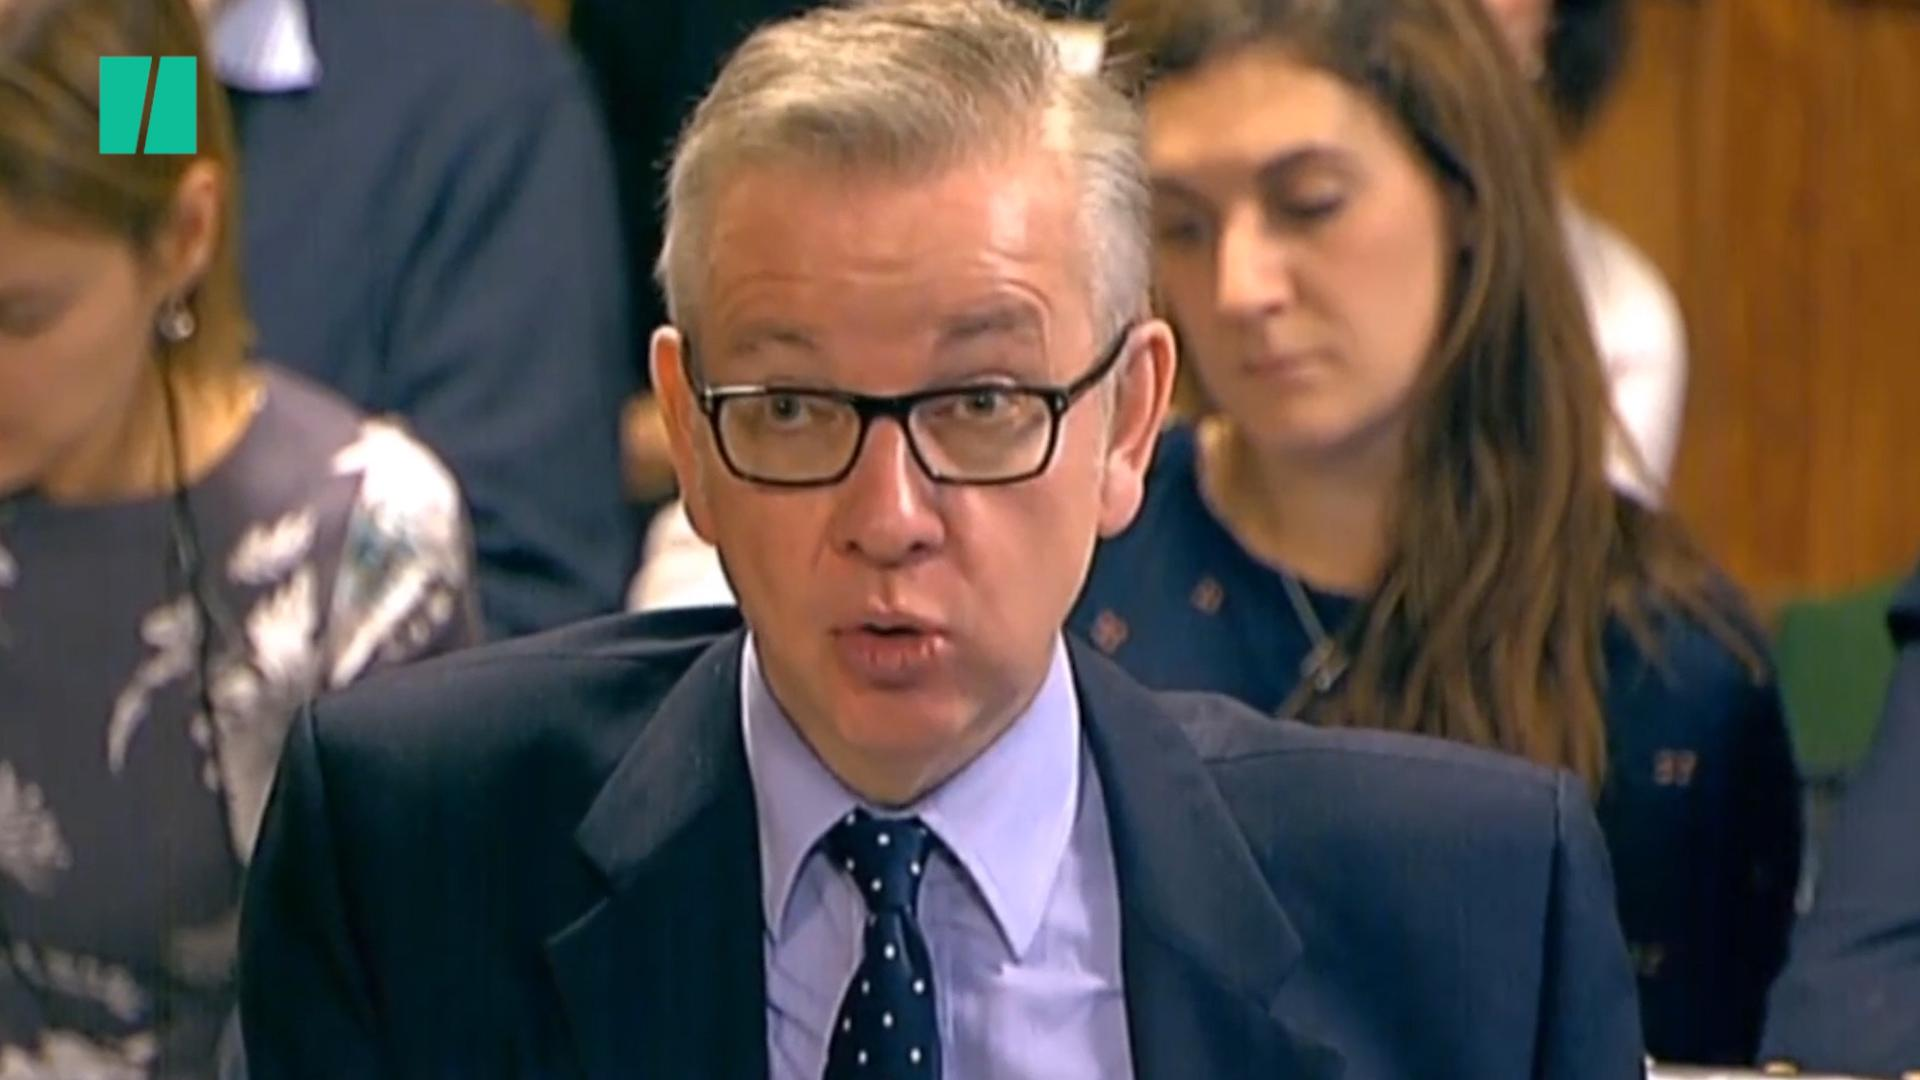 Exclusive: Michael Gove Faces Legal Action From Eco-Charity Over Post-Brexit Deregulation Of Pesticides